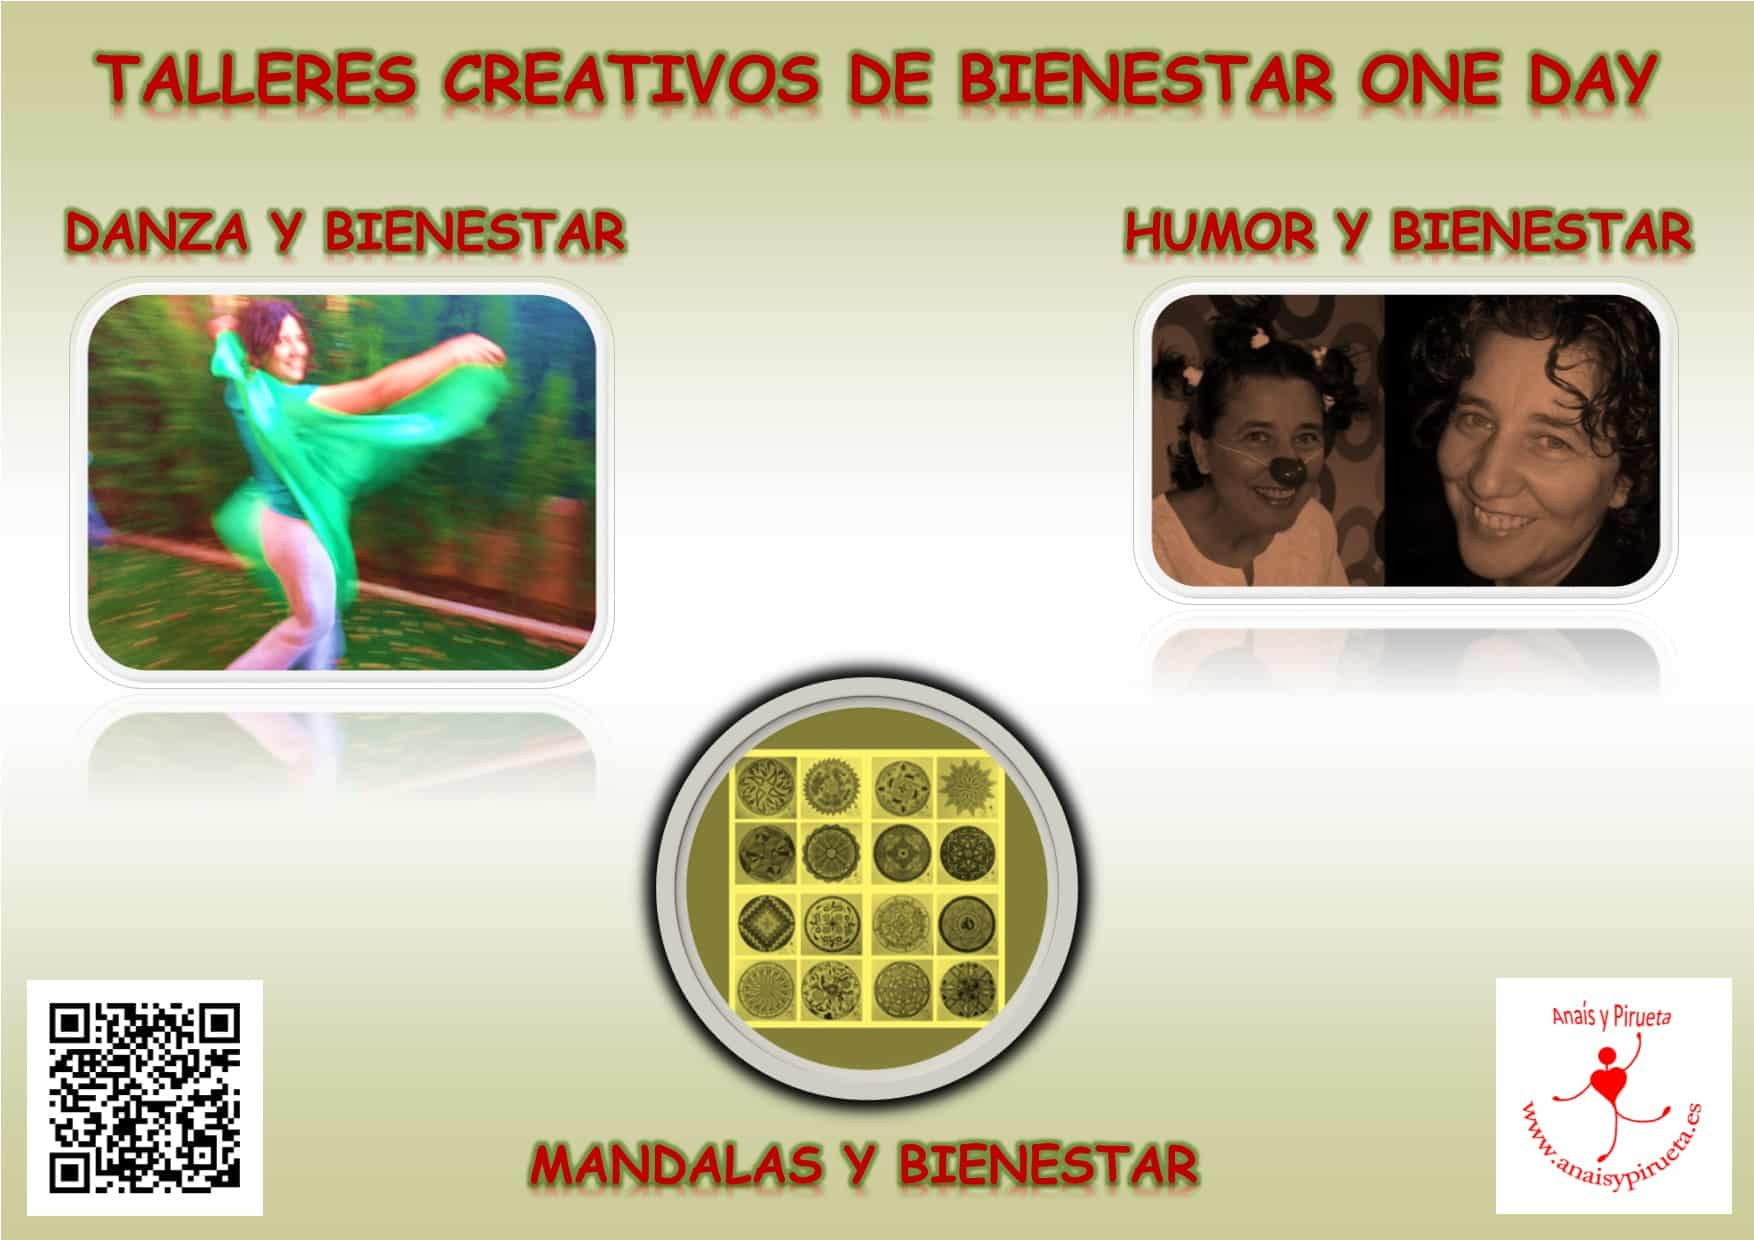 Talleres Creativos de Bienestar One Day